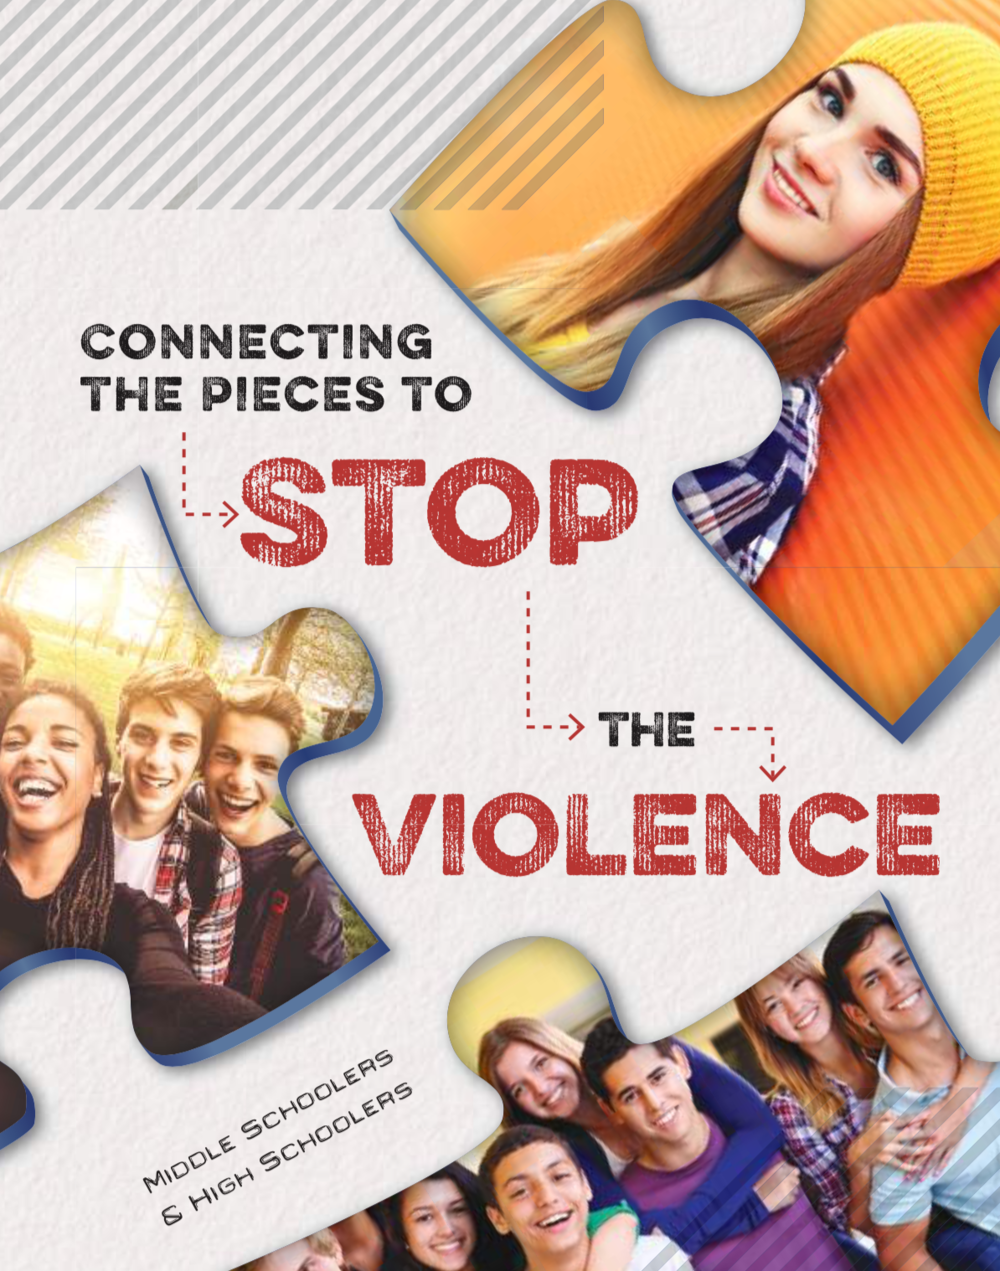 Connecting the Pieces: A Guide to Conflict Resolution and Avoiding Risky Situations